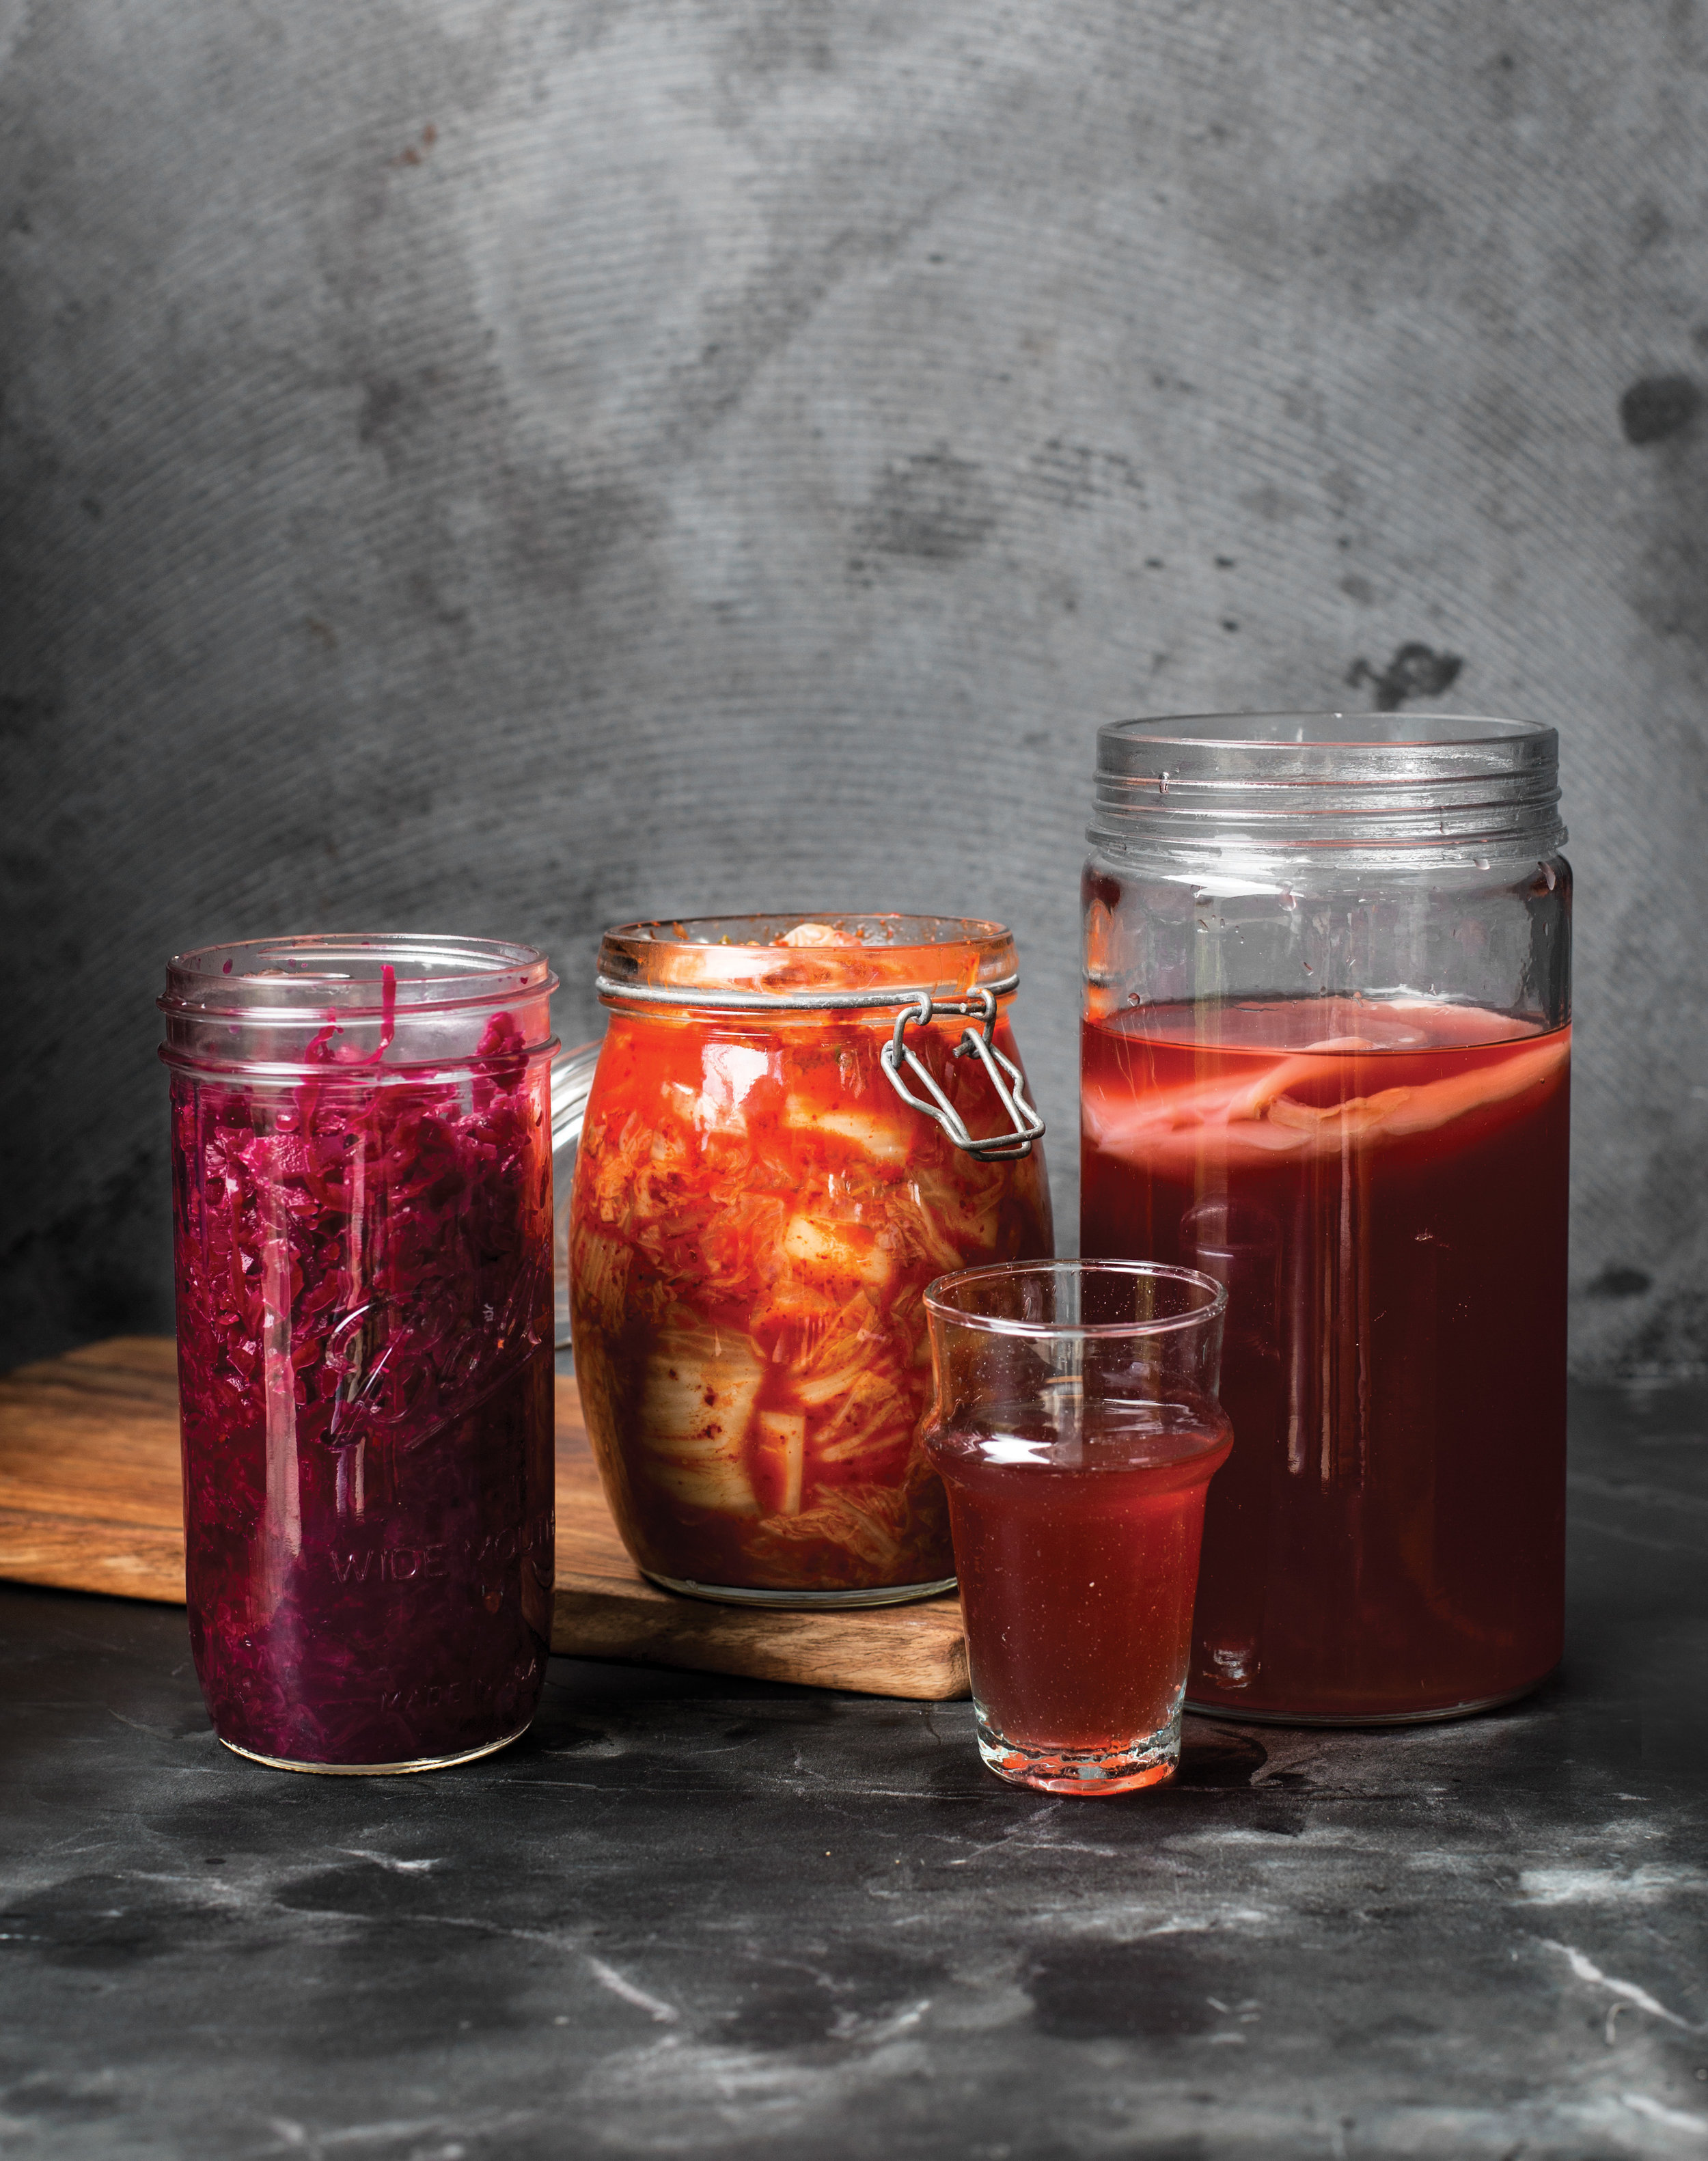 Annabel_Langbein_TOGETHER_PicklingAndFermenting_FermentingImage_PRINT.jpg